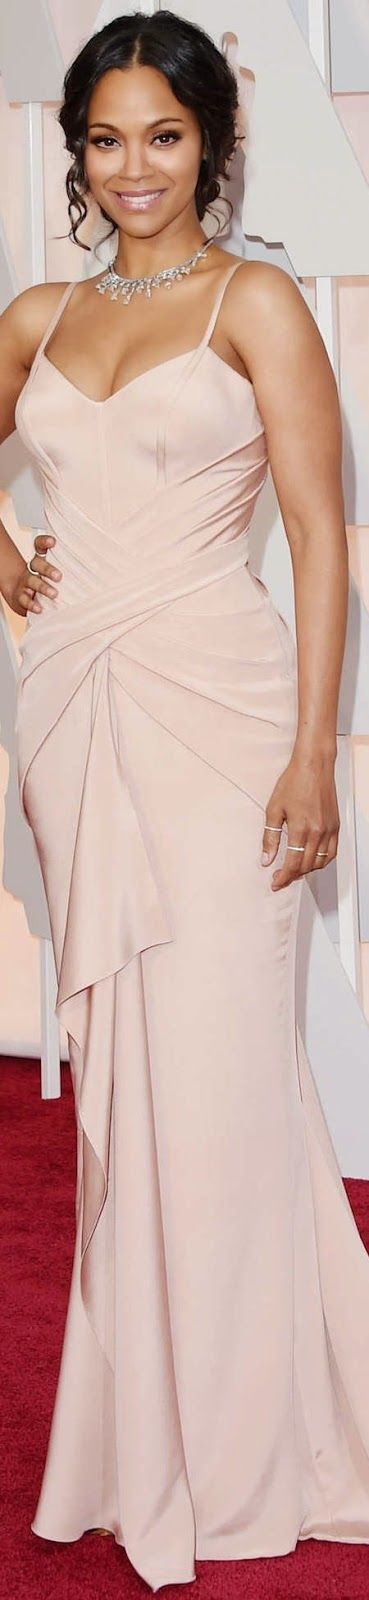 LOOKandLOVEwithLOLO: Zoe Saldana in Atelier Versace on the Red Carpet at the 2015 Oscars